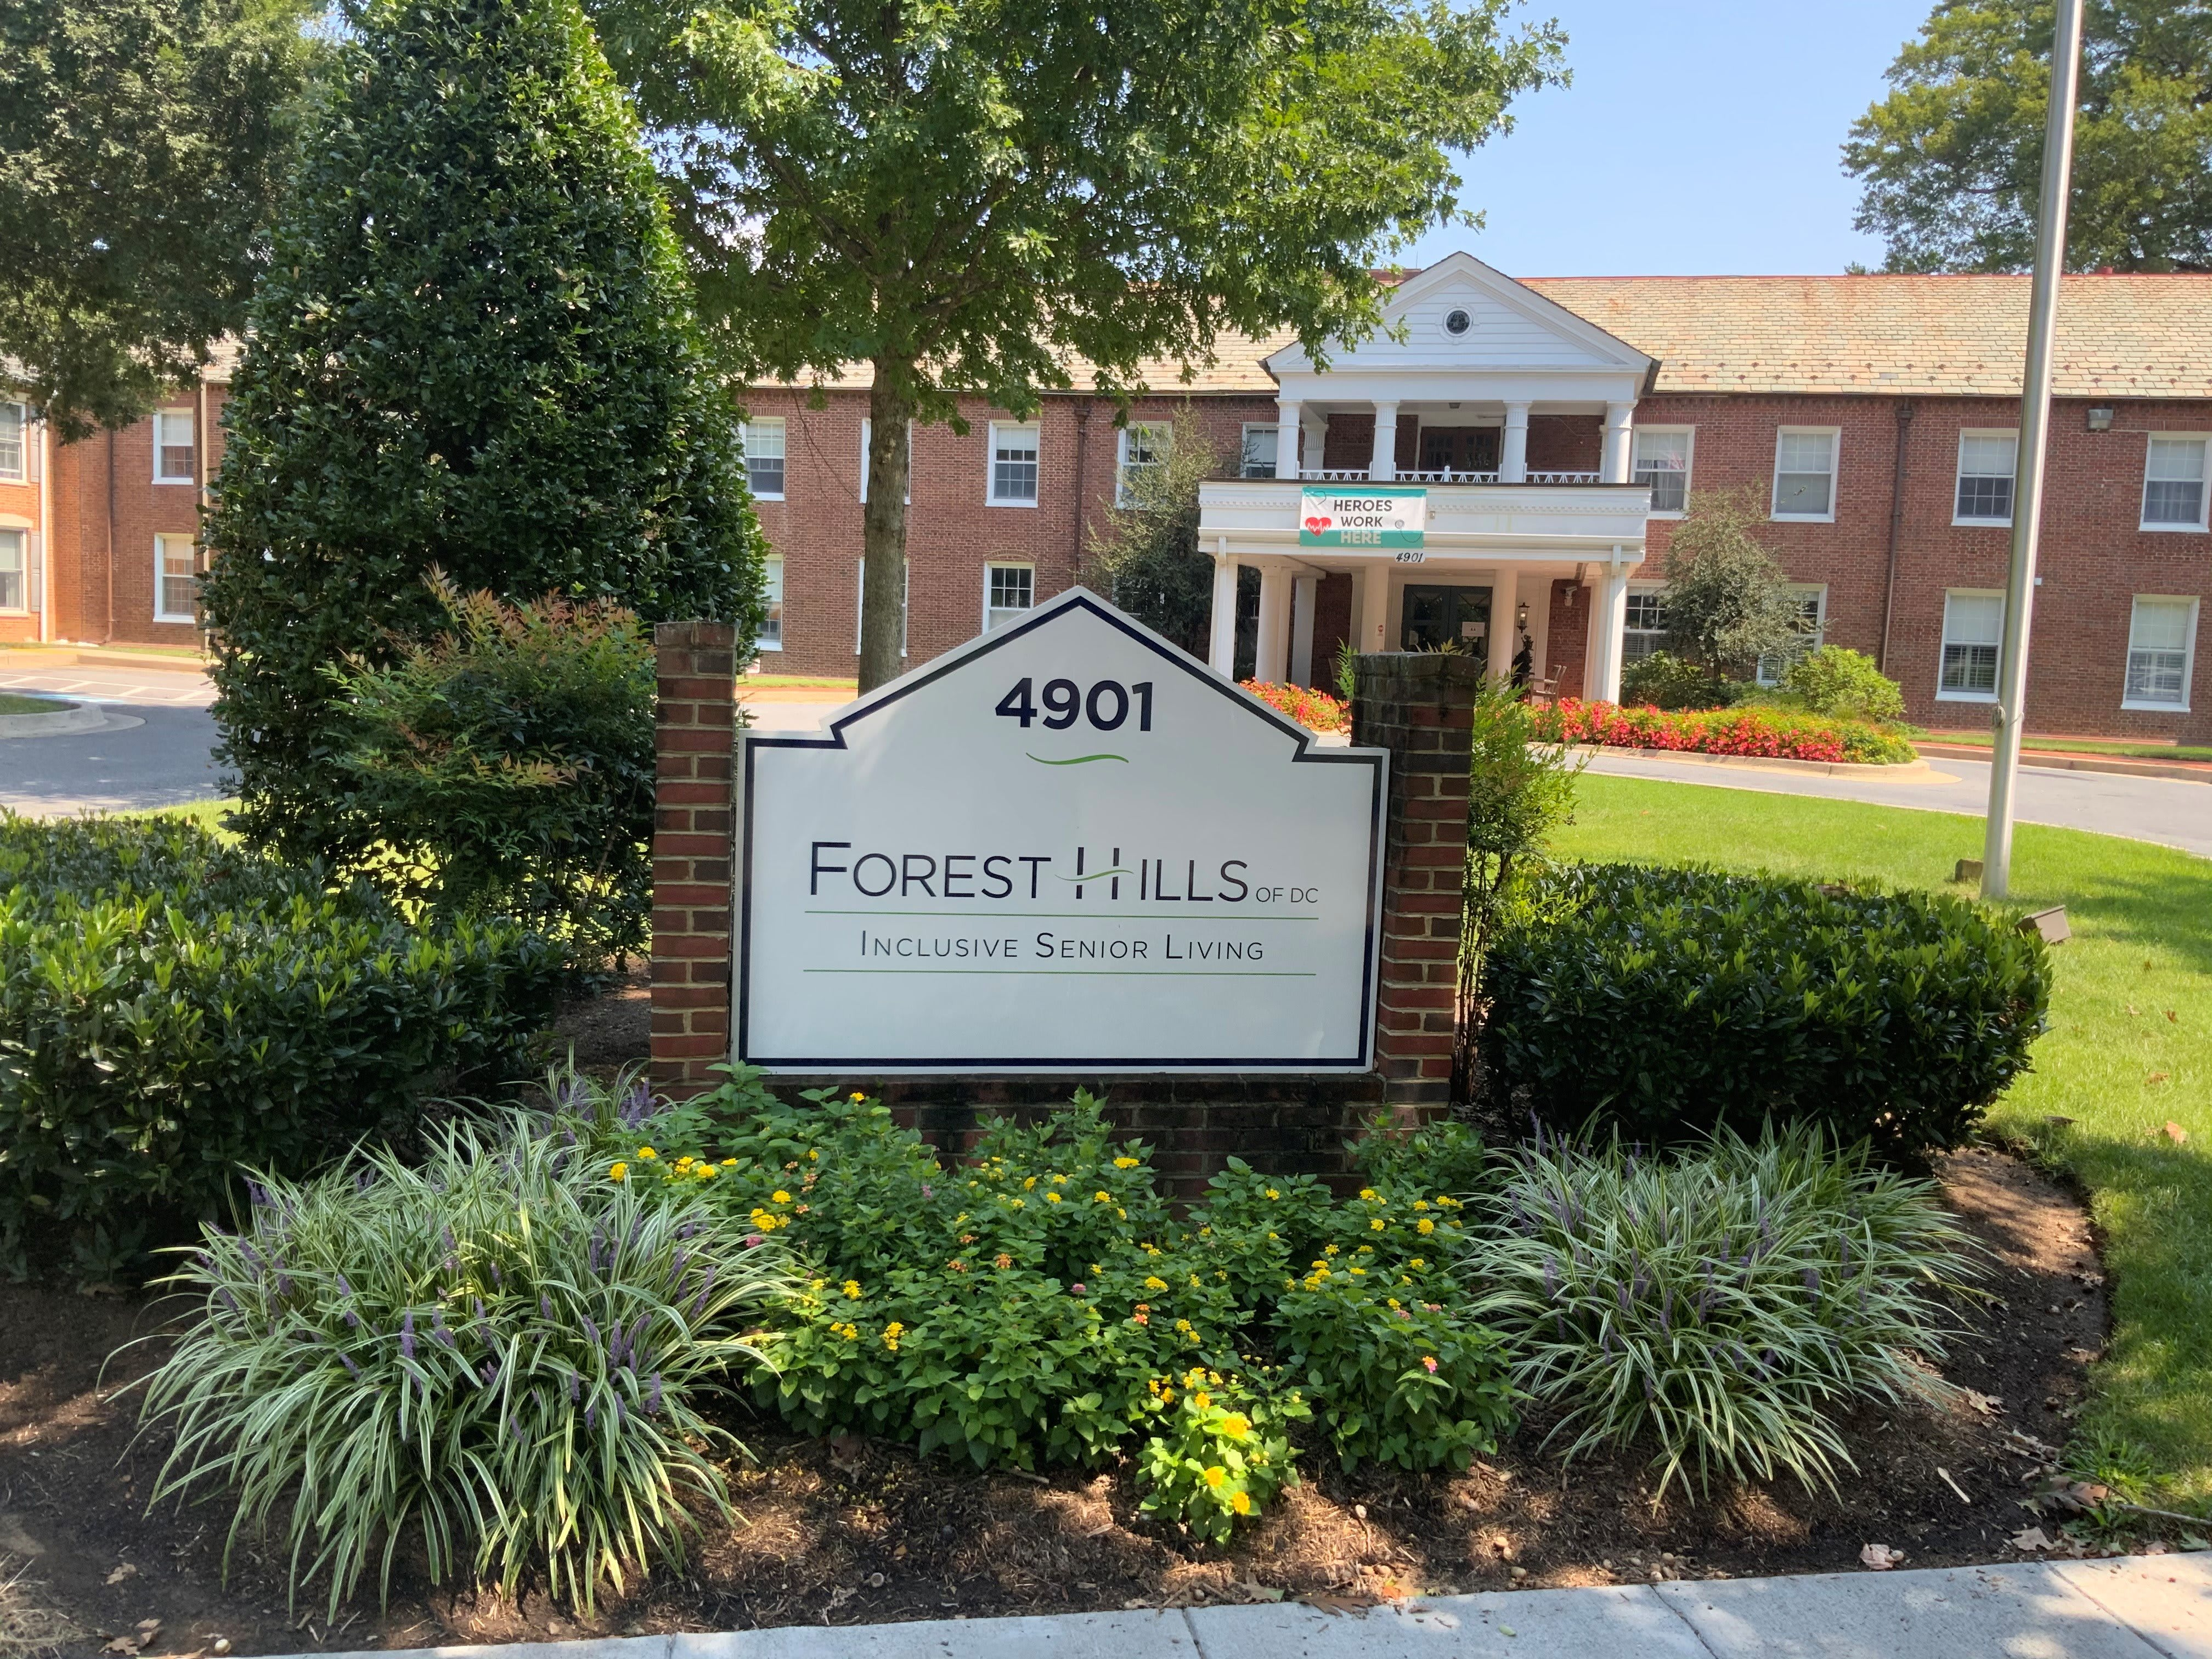 Photo 1 of Forest Hills of DC